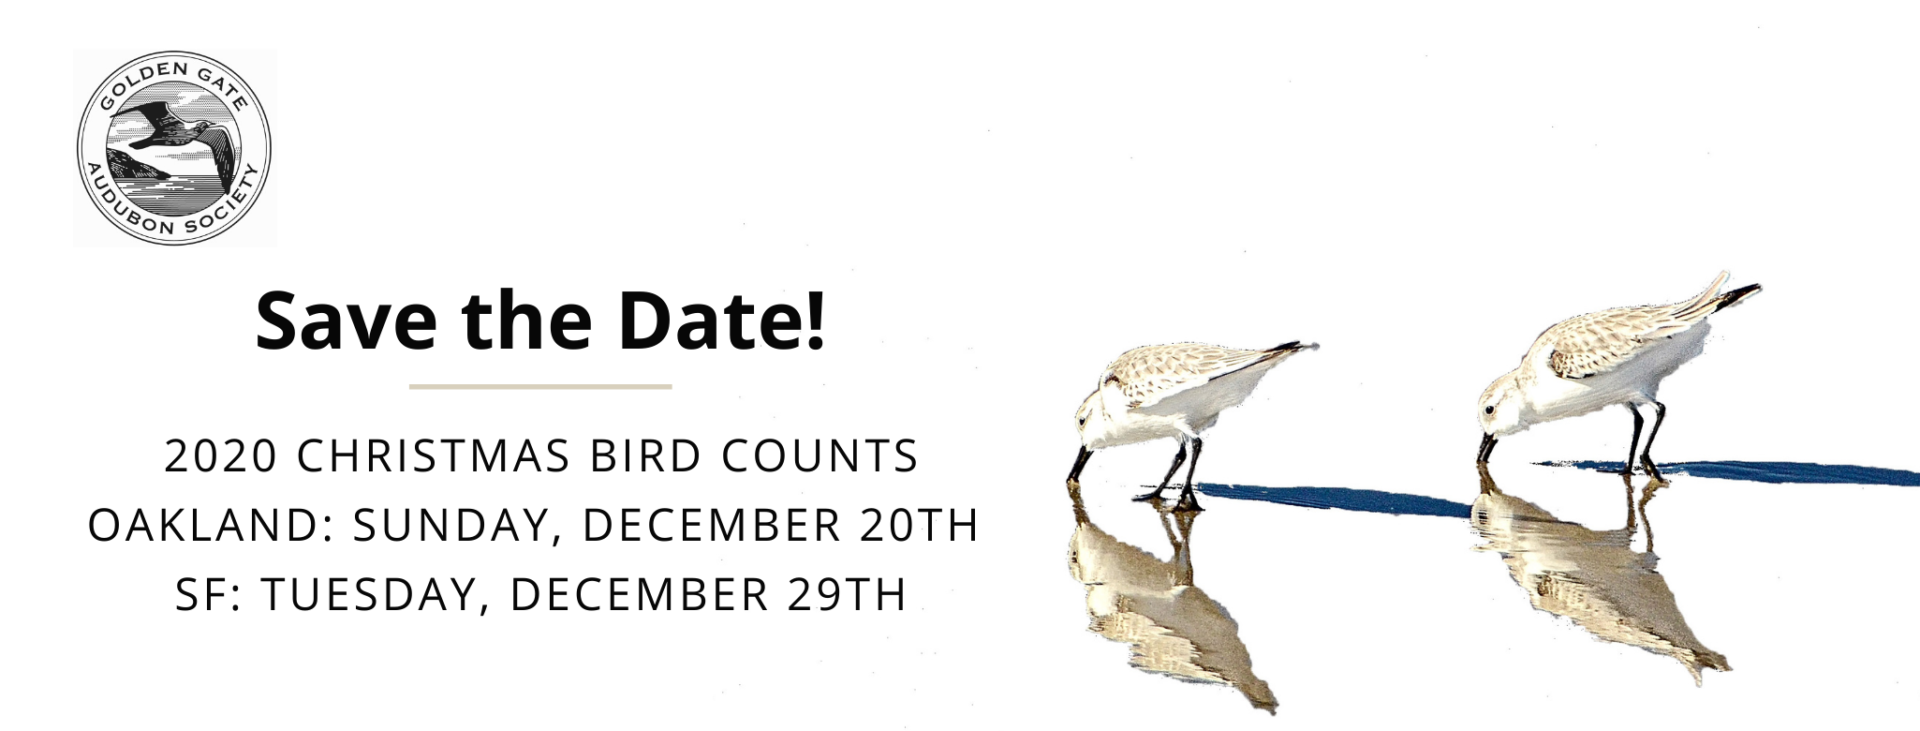 2020 Christmas Bird Count Dates Christmas Bird Count